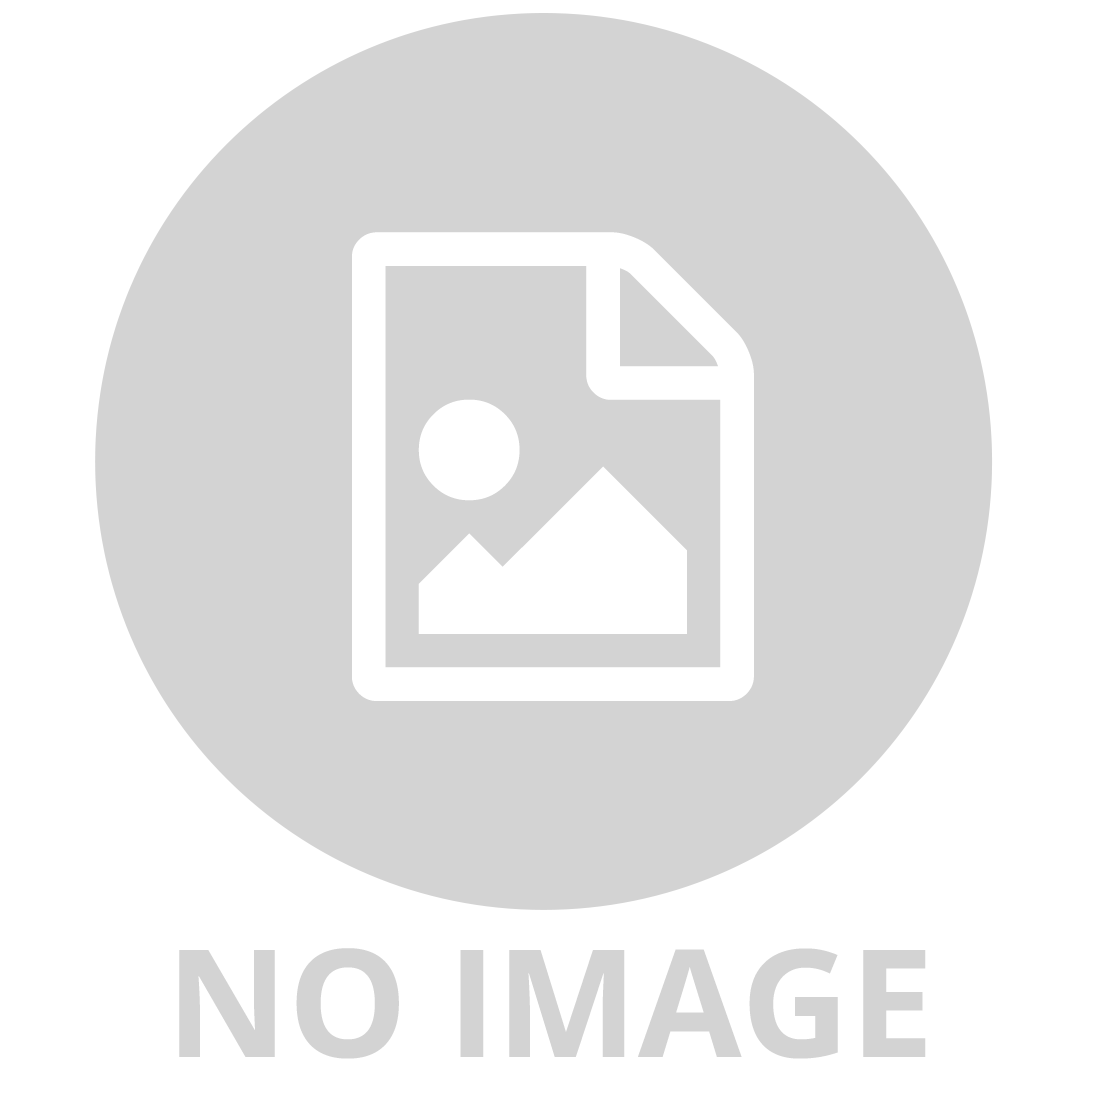 RAVENSBURGER 1000PC JIGSAW PUZZLE THE PUZZLER'S PALETTE